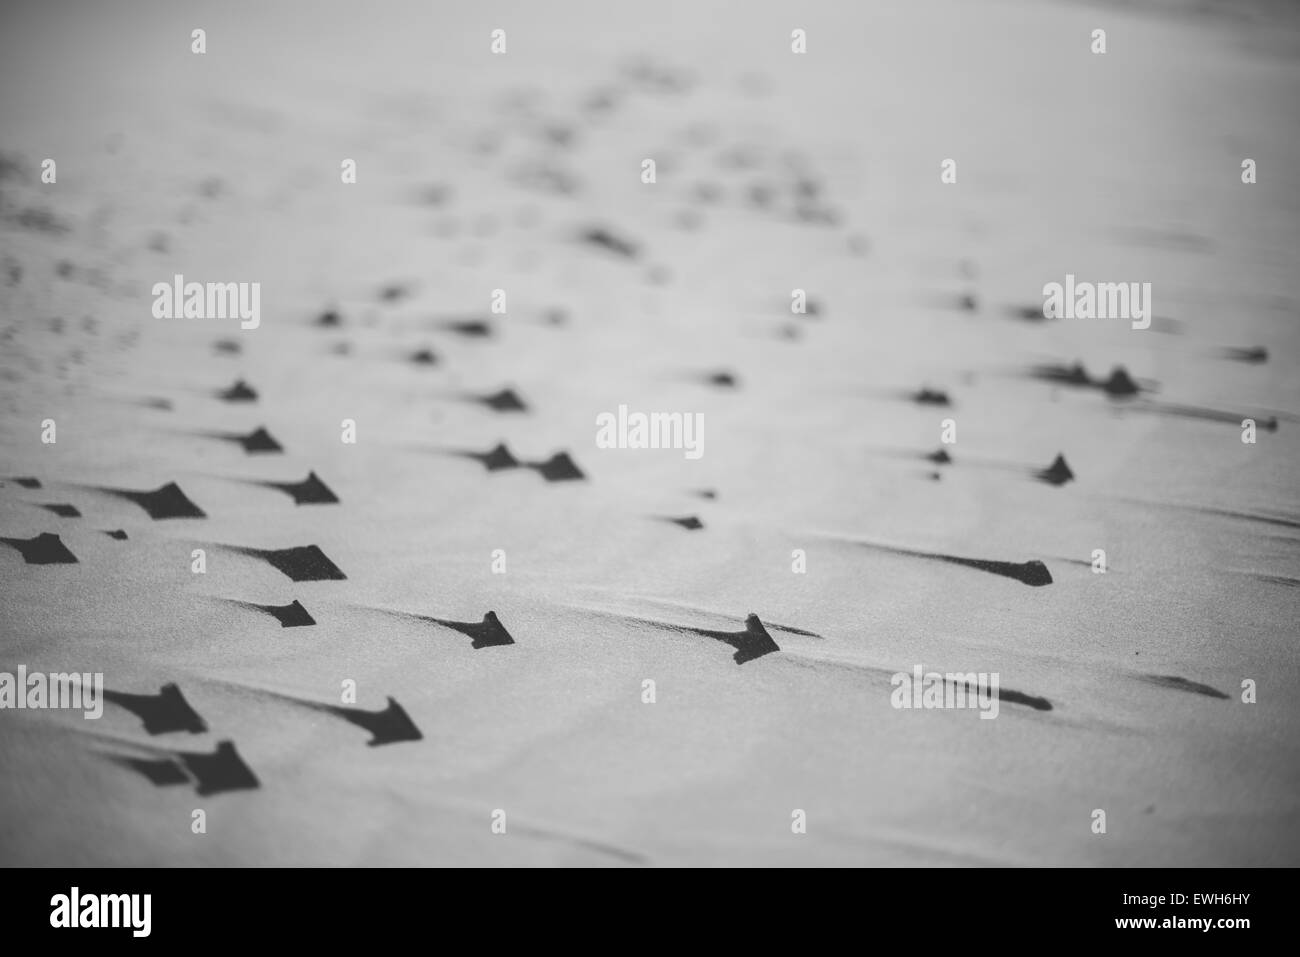 Splinters in sand, close-up, black and white Stock Photo